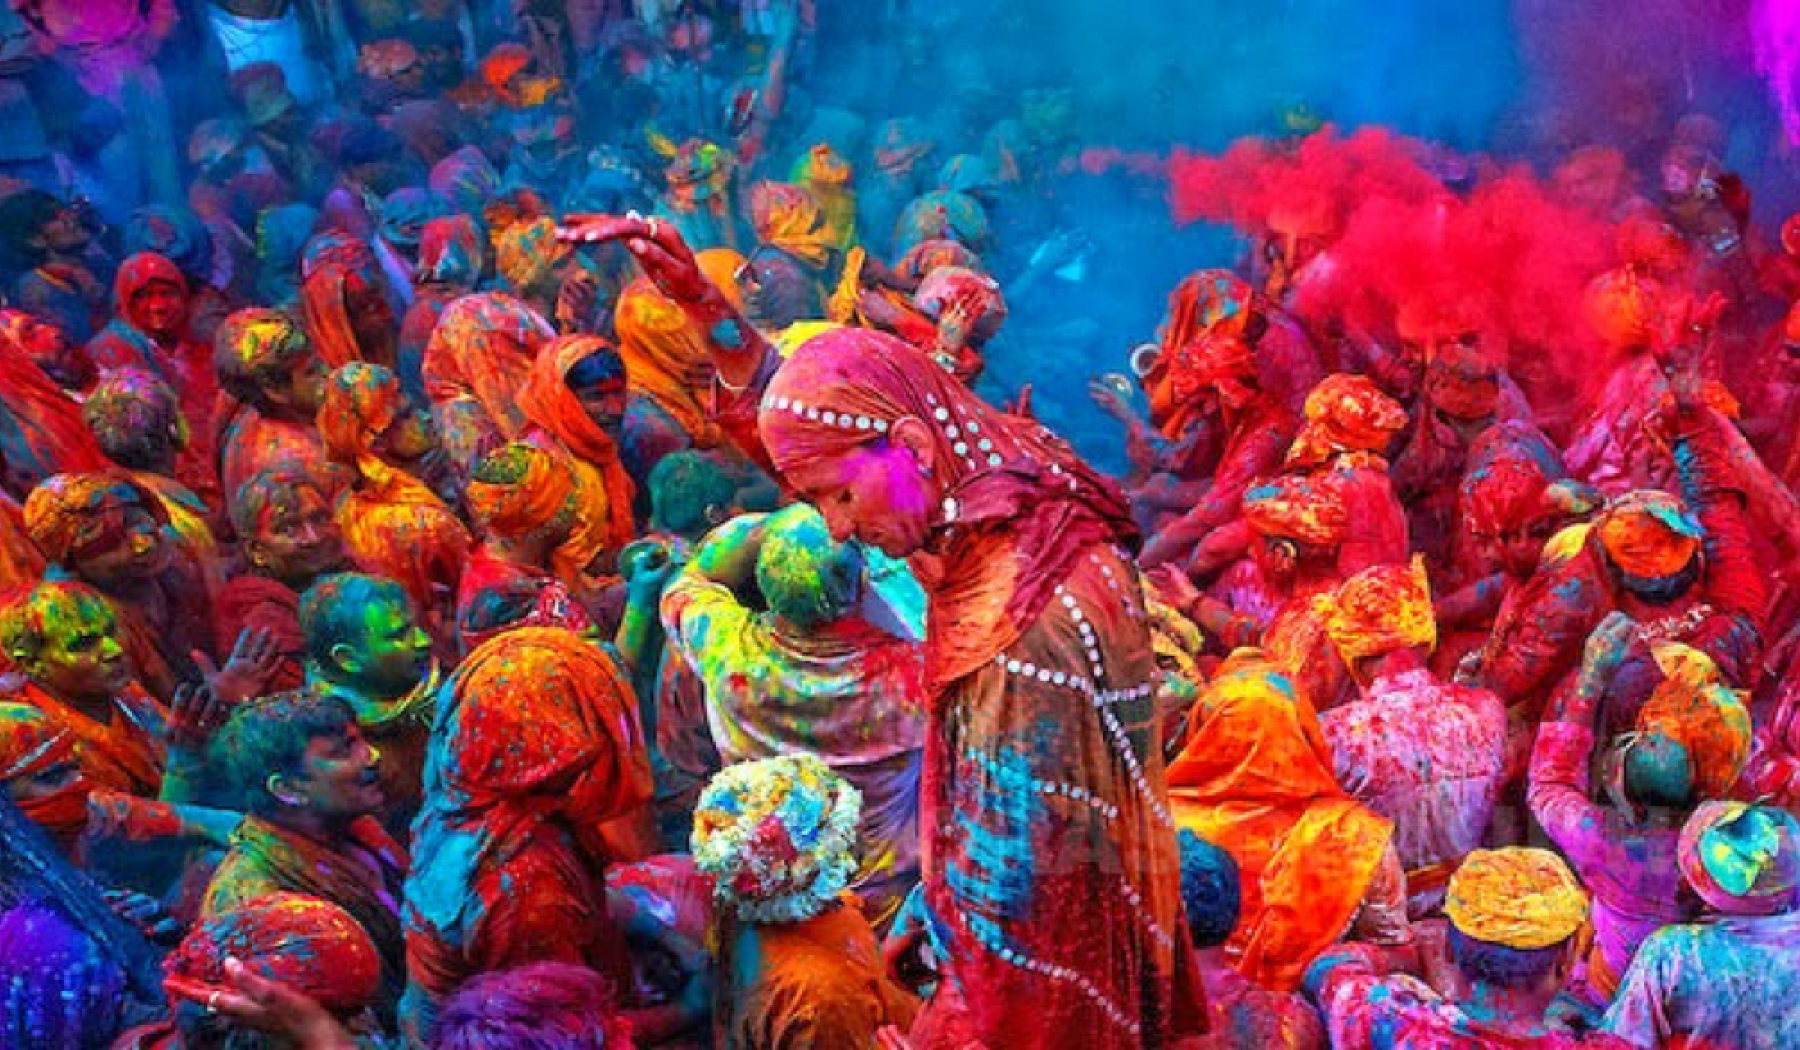 essay colours india Essay questions: why is india considered to be an important part in the development of the world's culture and economy how does india's location and climate influence its economical potential.